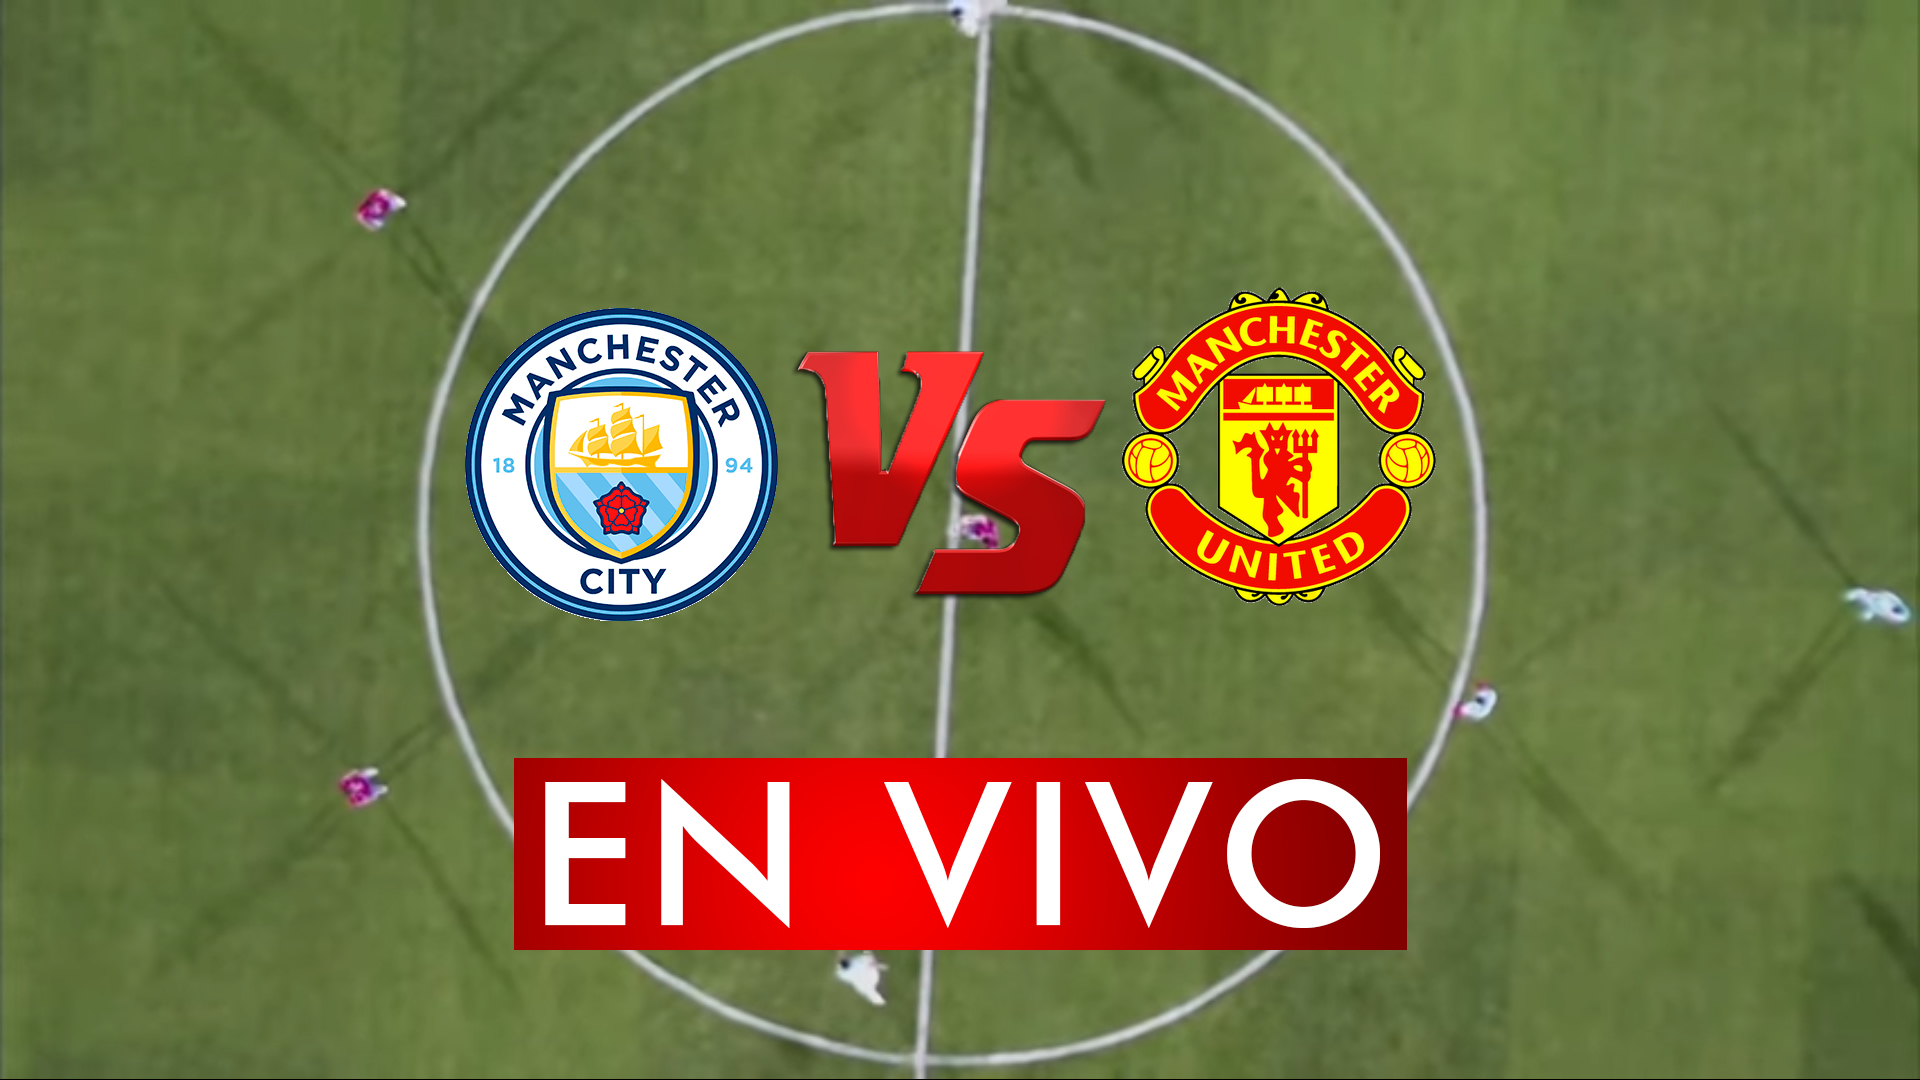 Manchester City vs Manchester United En Vivo Online Live